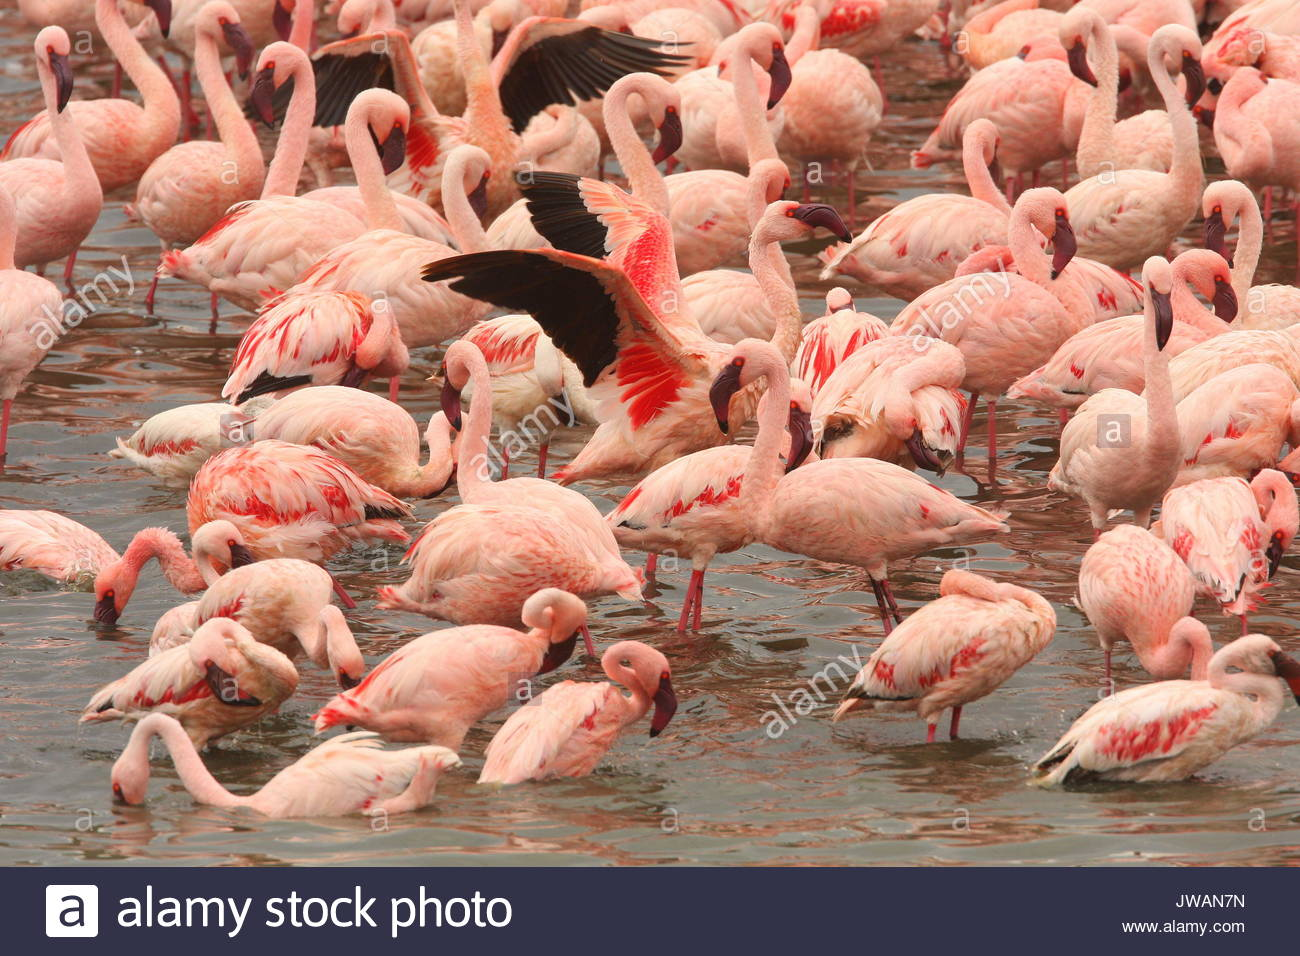 Lesser flamingos,Phoeniconaias minor. - Stock Image